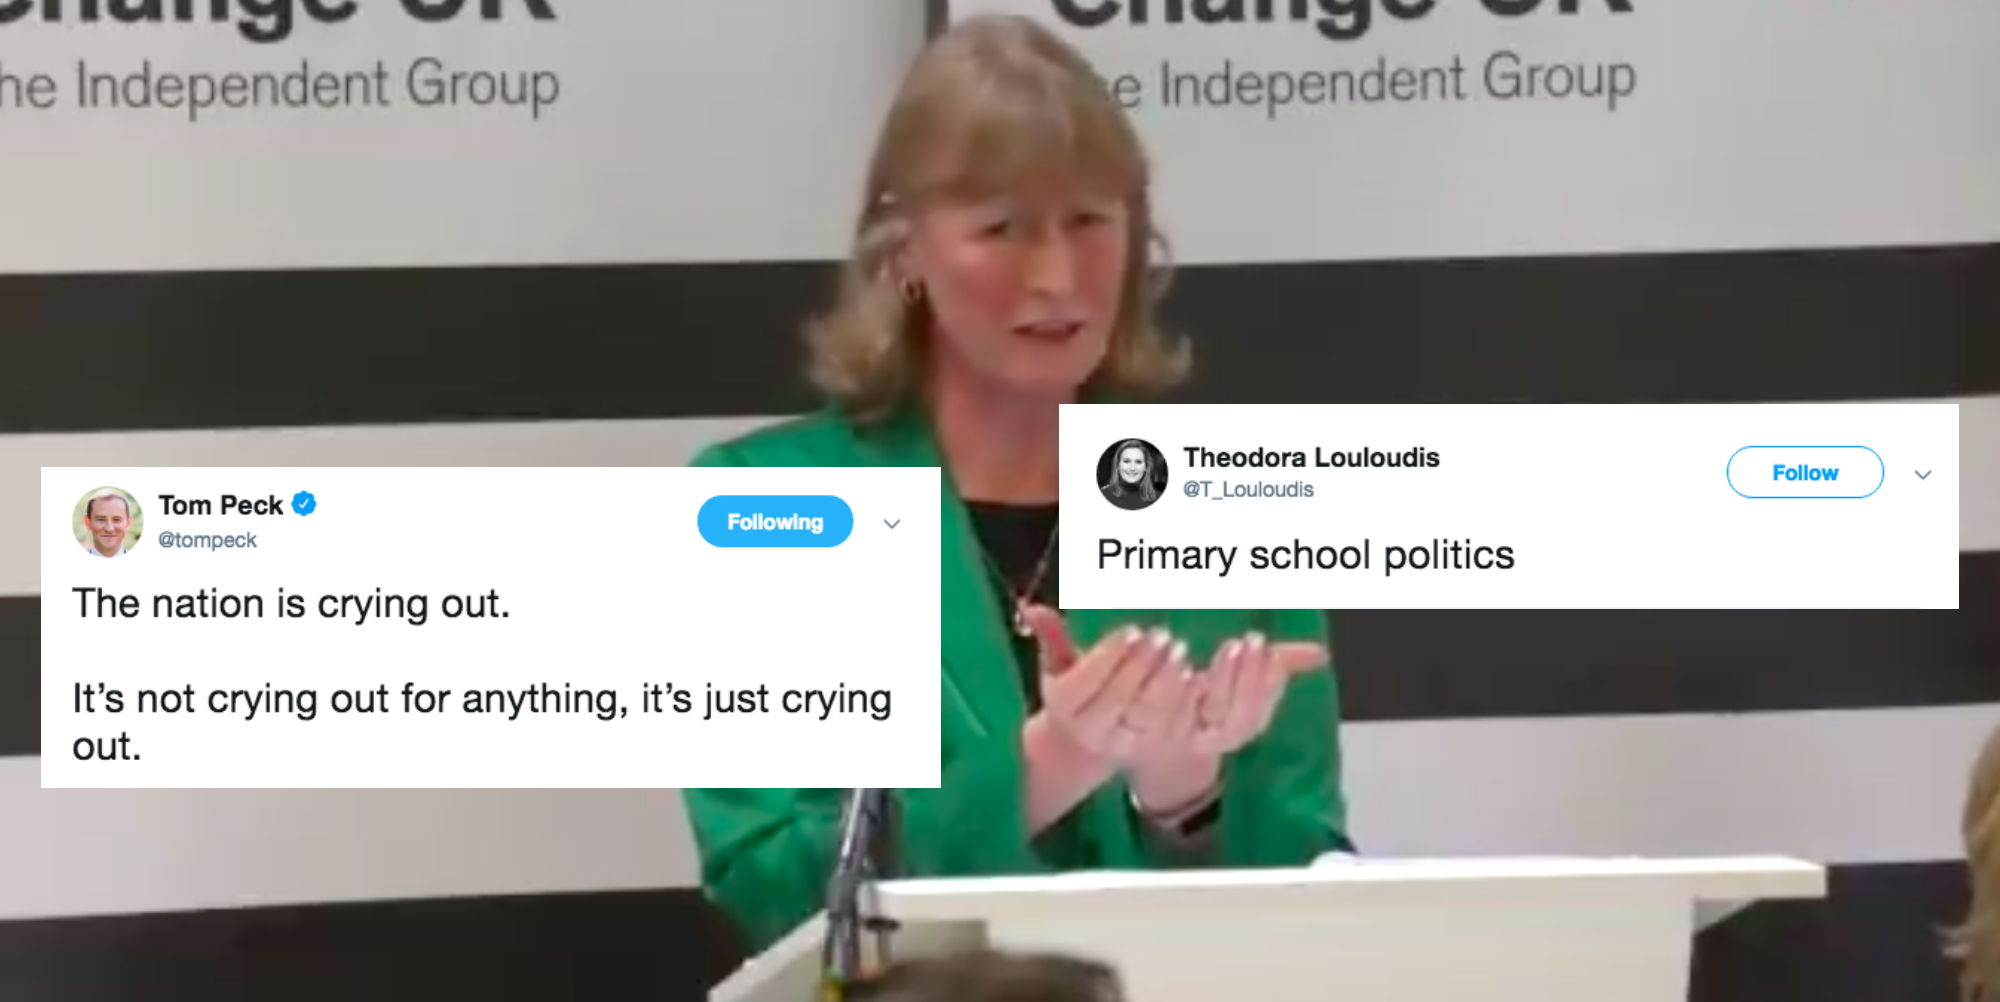 A Change UK MP gave an incredibly cringeworthy speech about Brexit and everyone is making the same joke